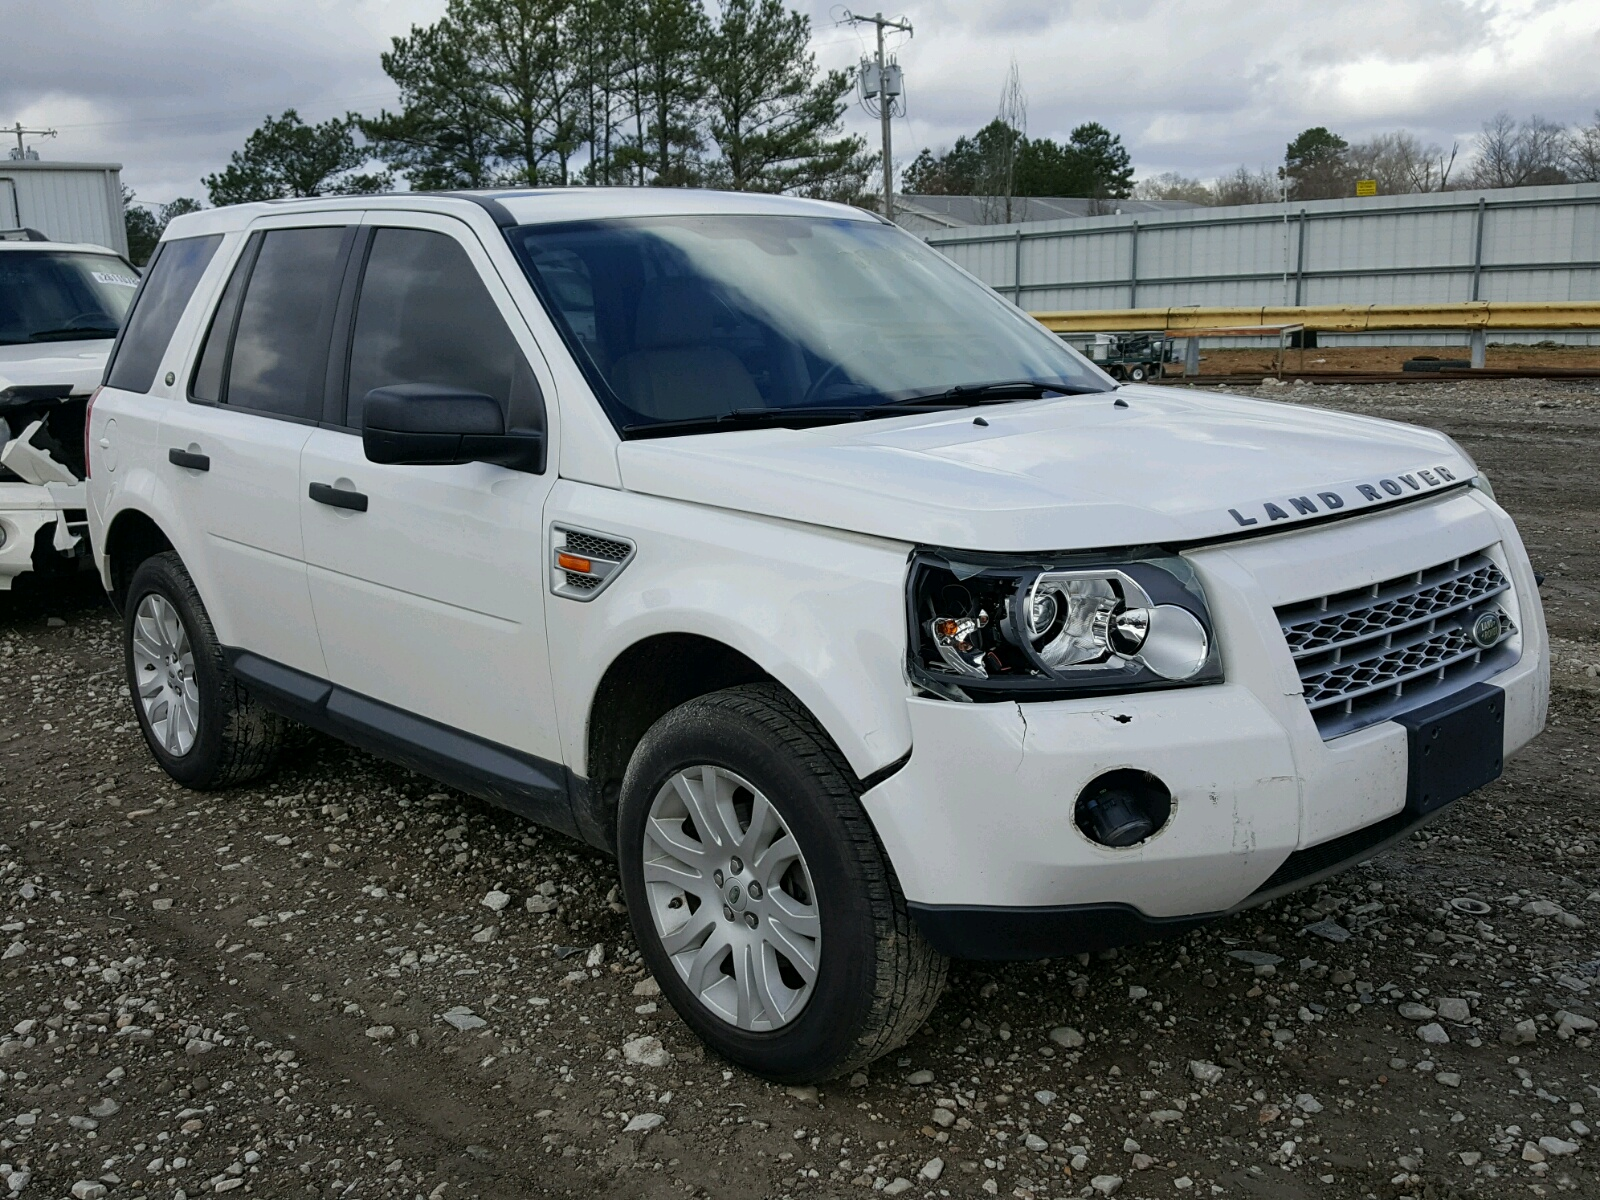 black carfinder title auto for savannah rover certificate sale online copart of auctions landrover land in ga view on en se lot right tec